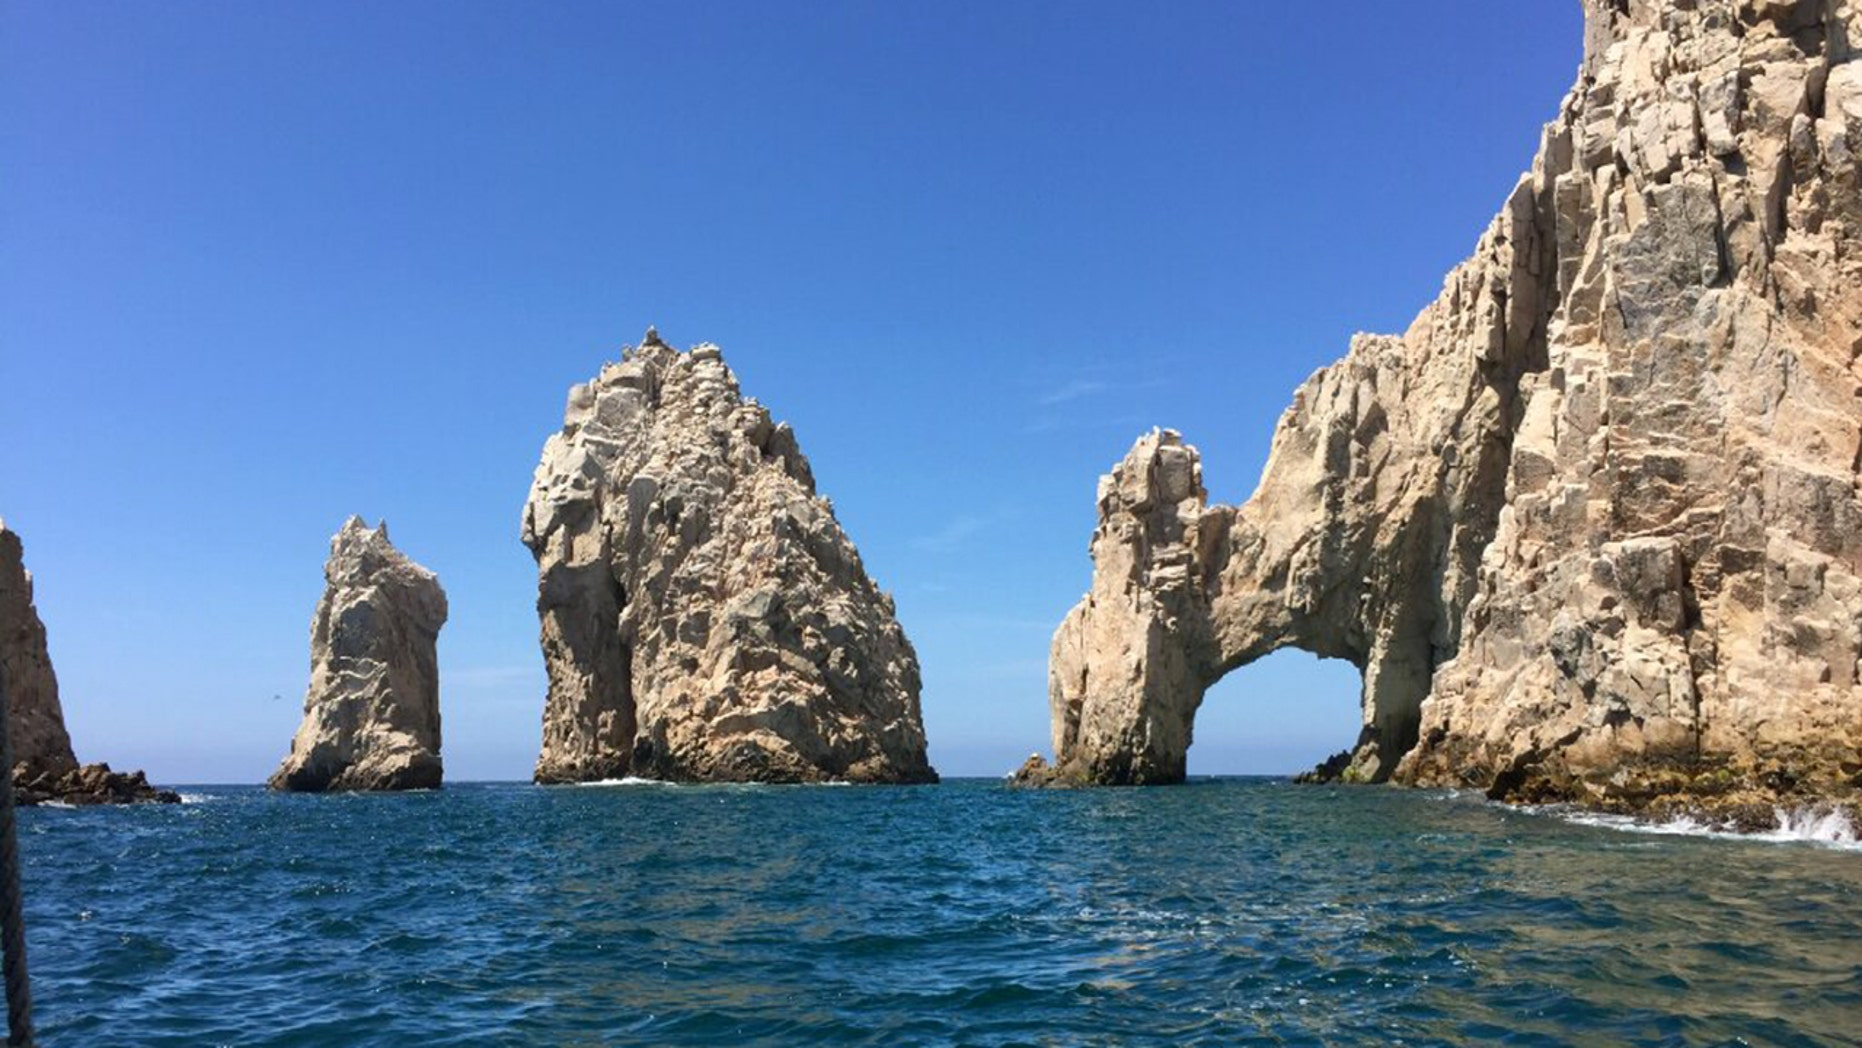 The distinctive landmark of Cabo San Lucas is the rugged taffy-colored El Arco (The Arch) rock formation that erupts from the sea at the tip of the Baja Peninsula, where the Pacific Ocean meets the Sea of Cortez.